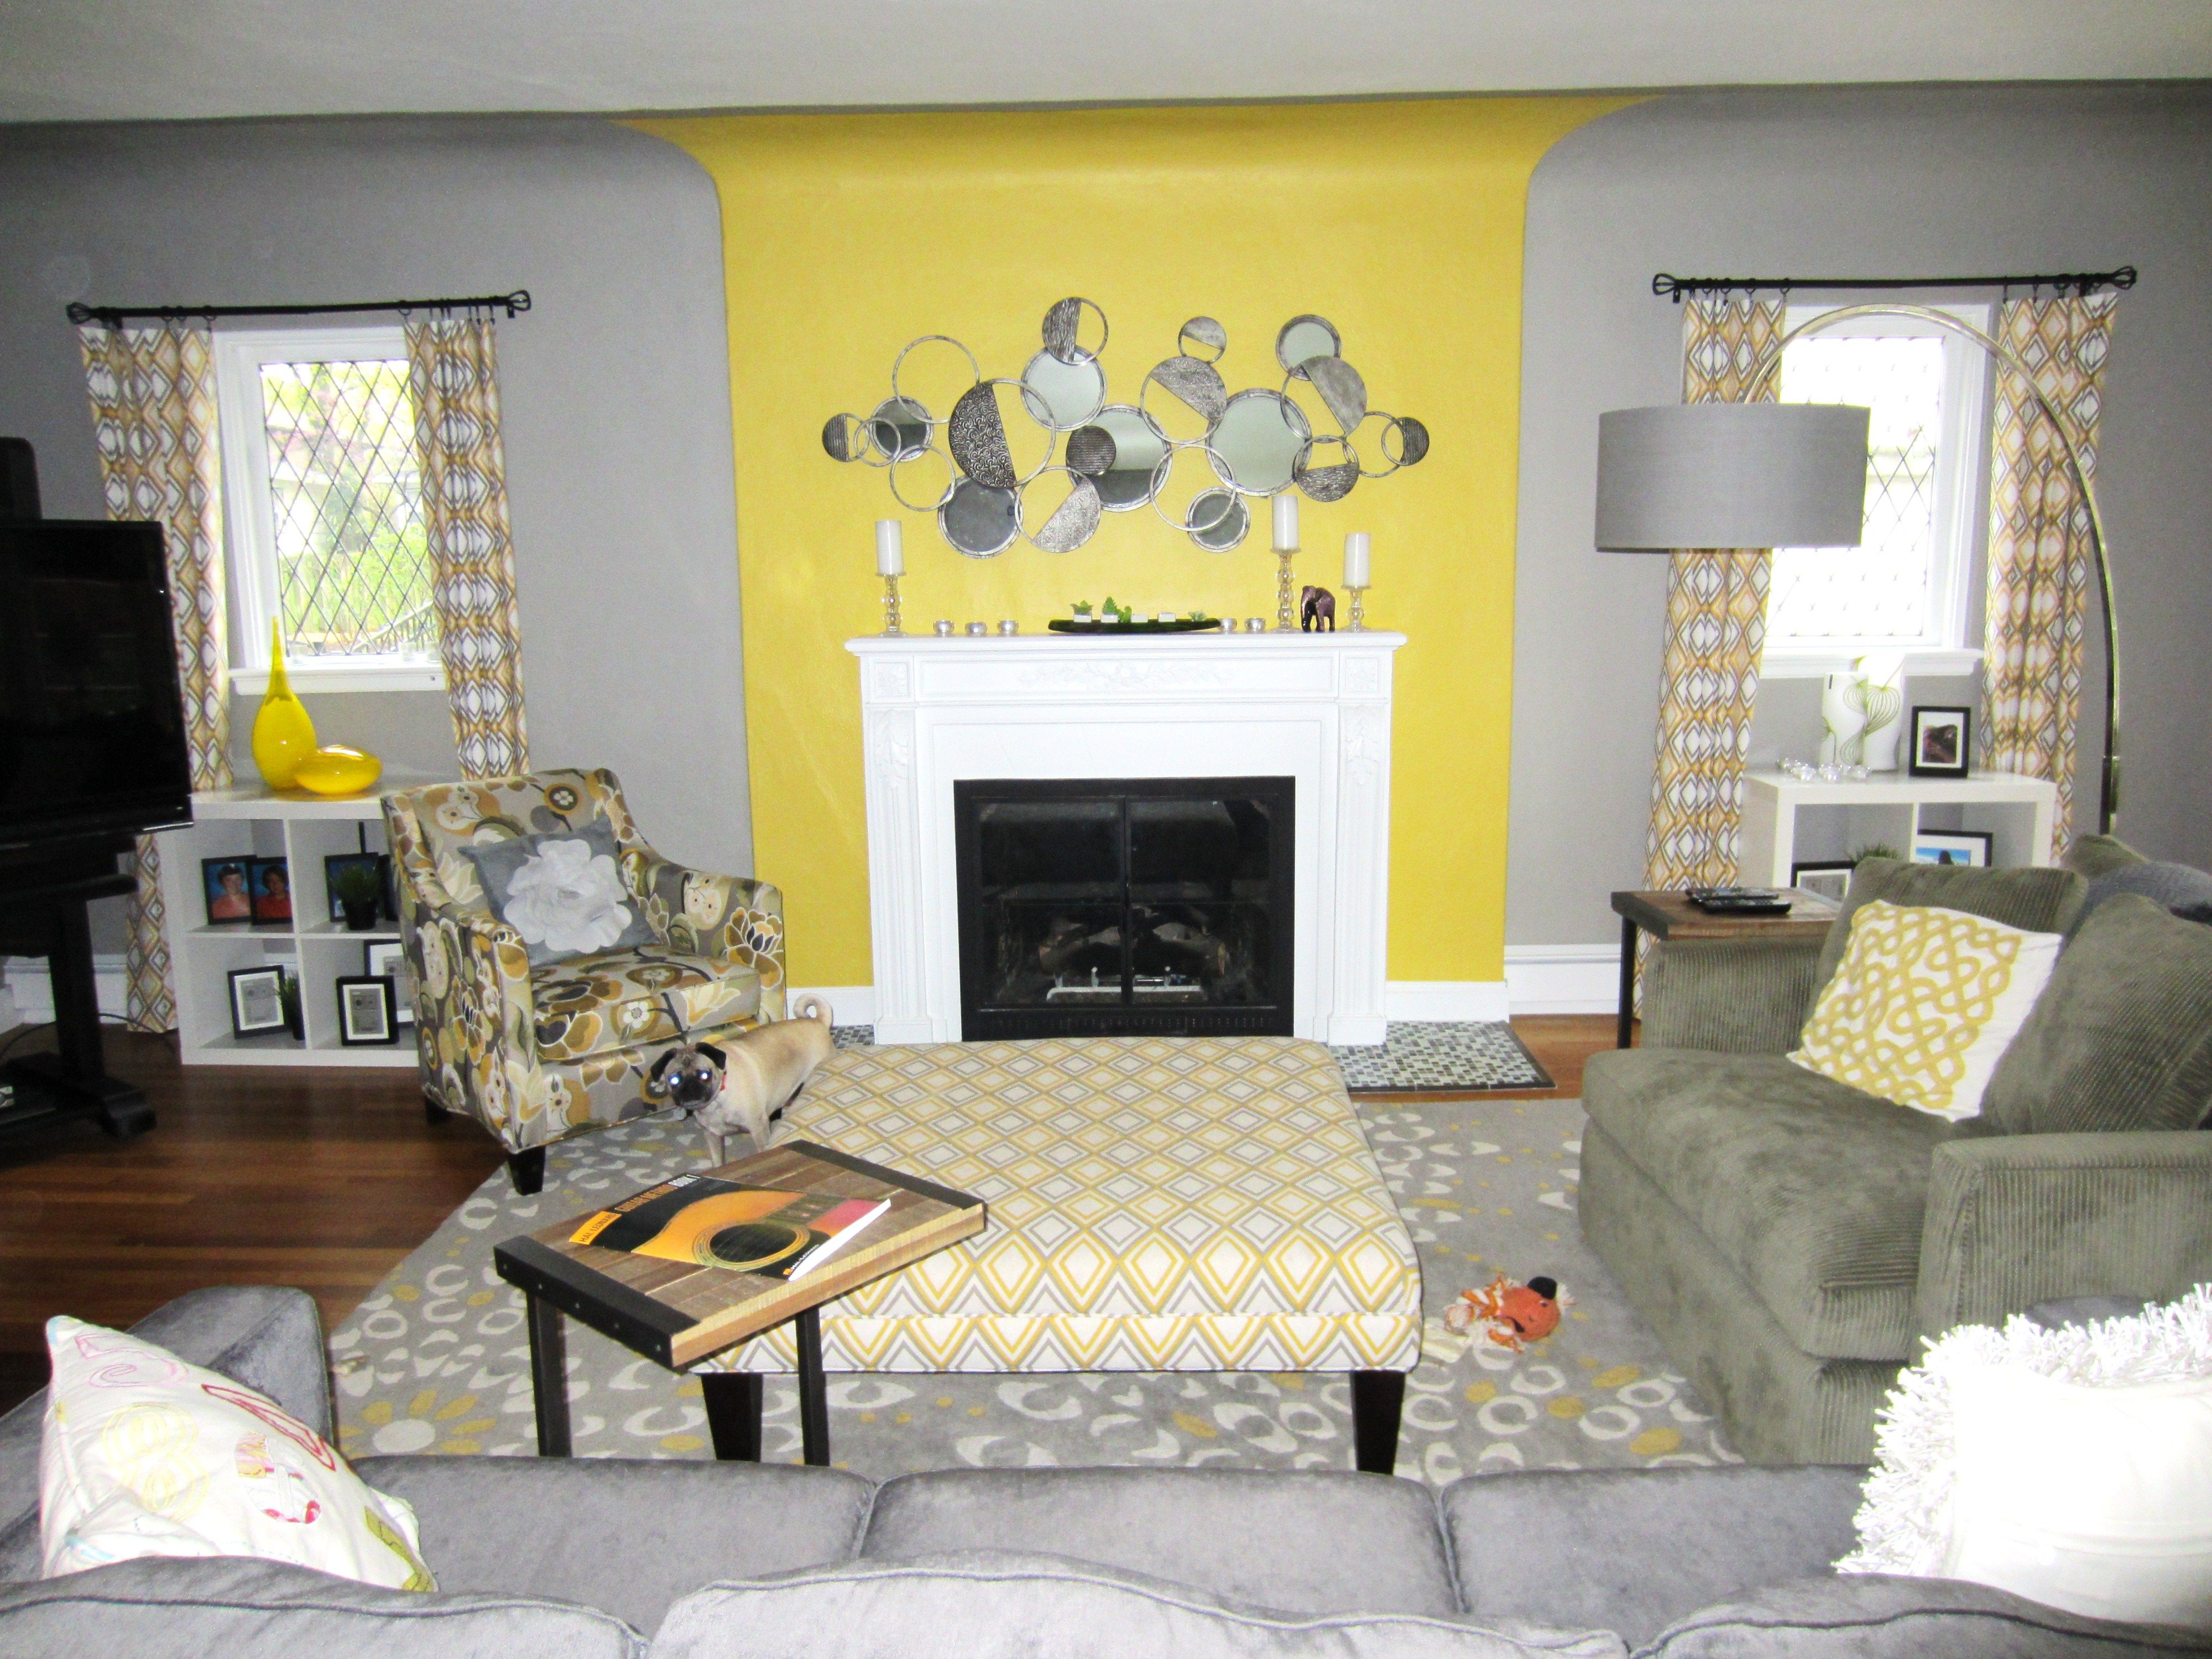 Pin by Sarah Lorusso on Home Decor-Paint Ideas  Yellow living